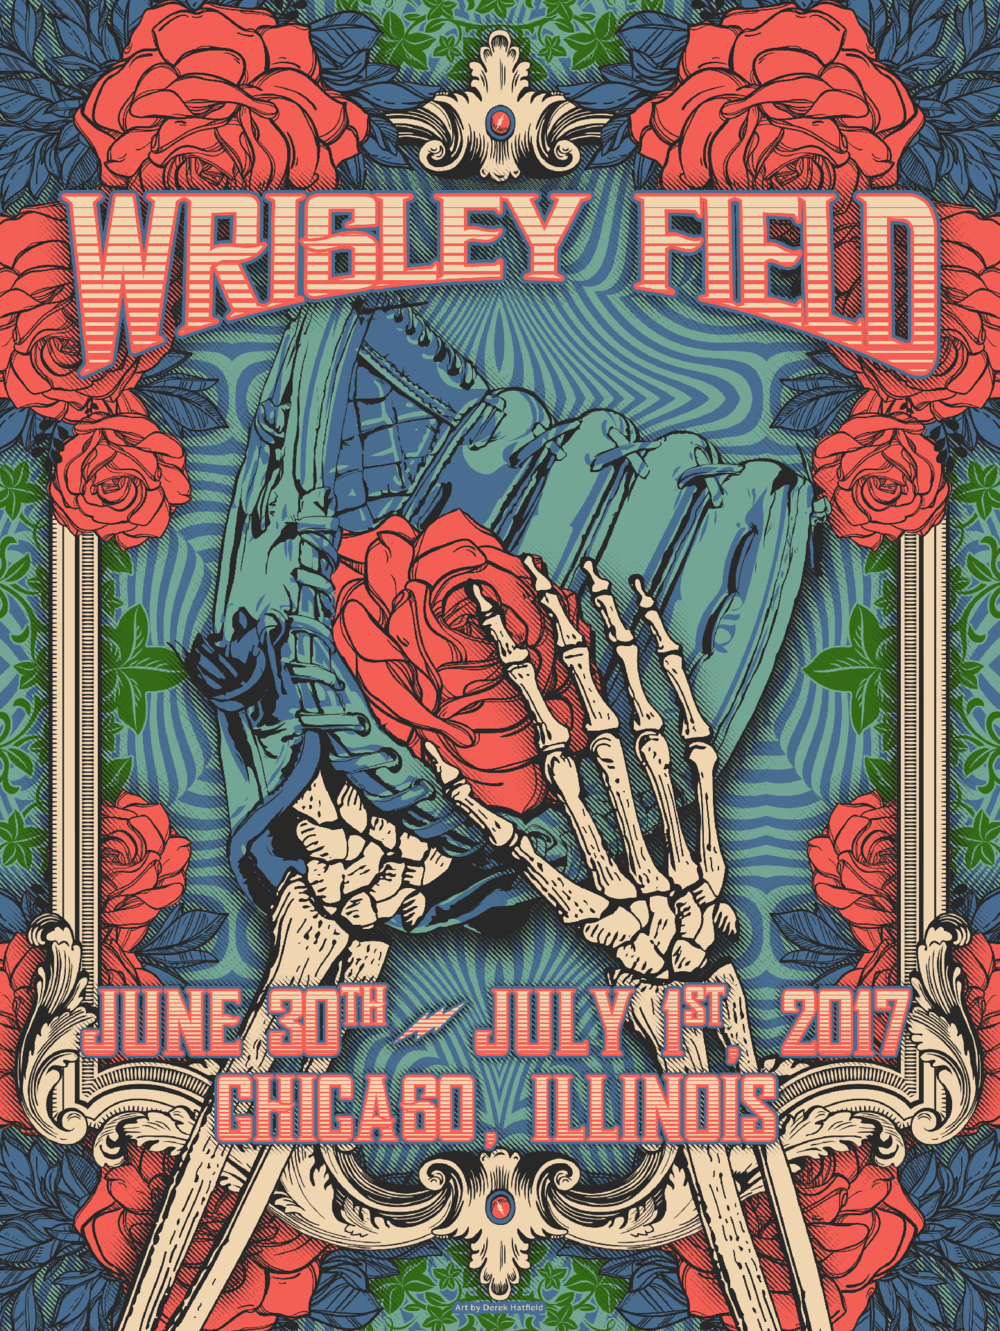 Dead and Company - 6.30,7.1.2017